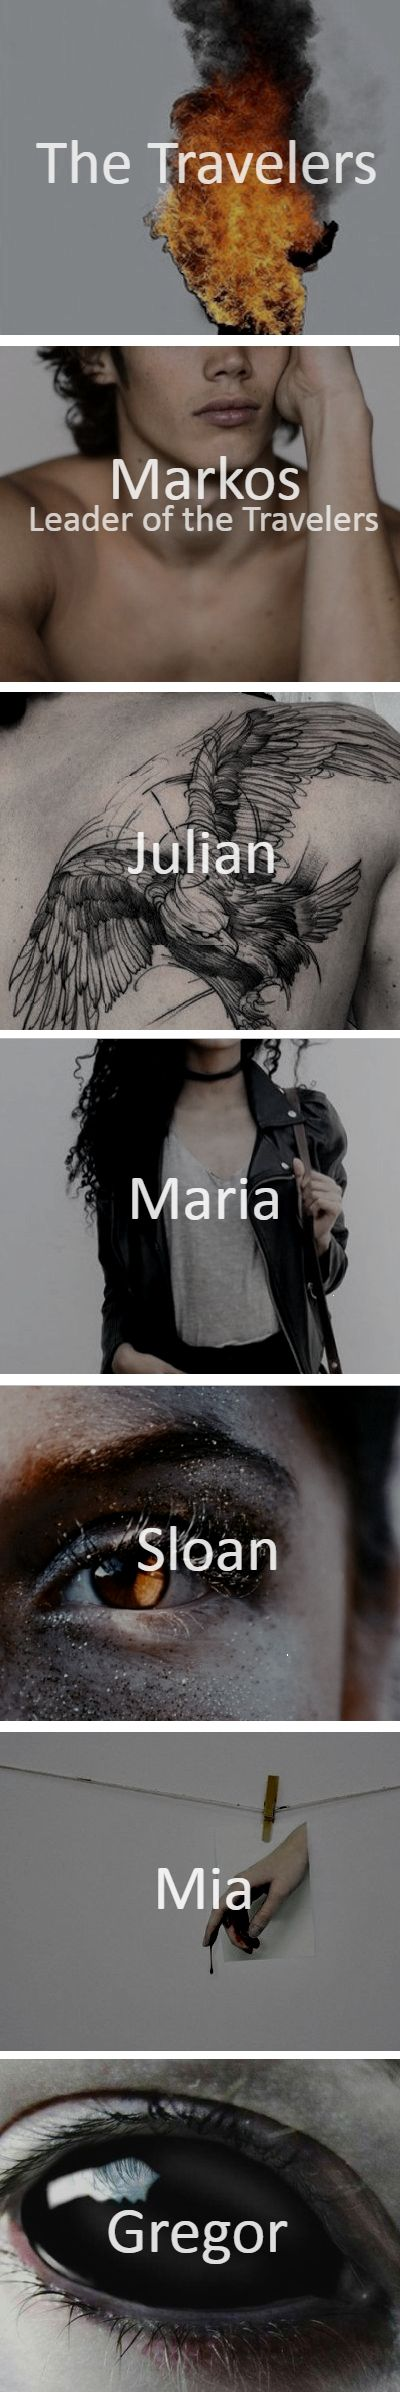 TVD characters _All travelers/Markos/Julian/Maria/Sloan/Mia/Gregor_ - The Travelers - Work: D.A.